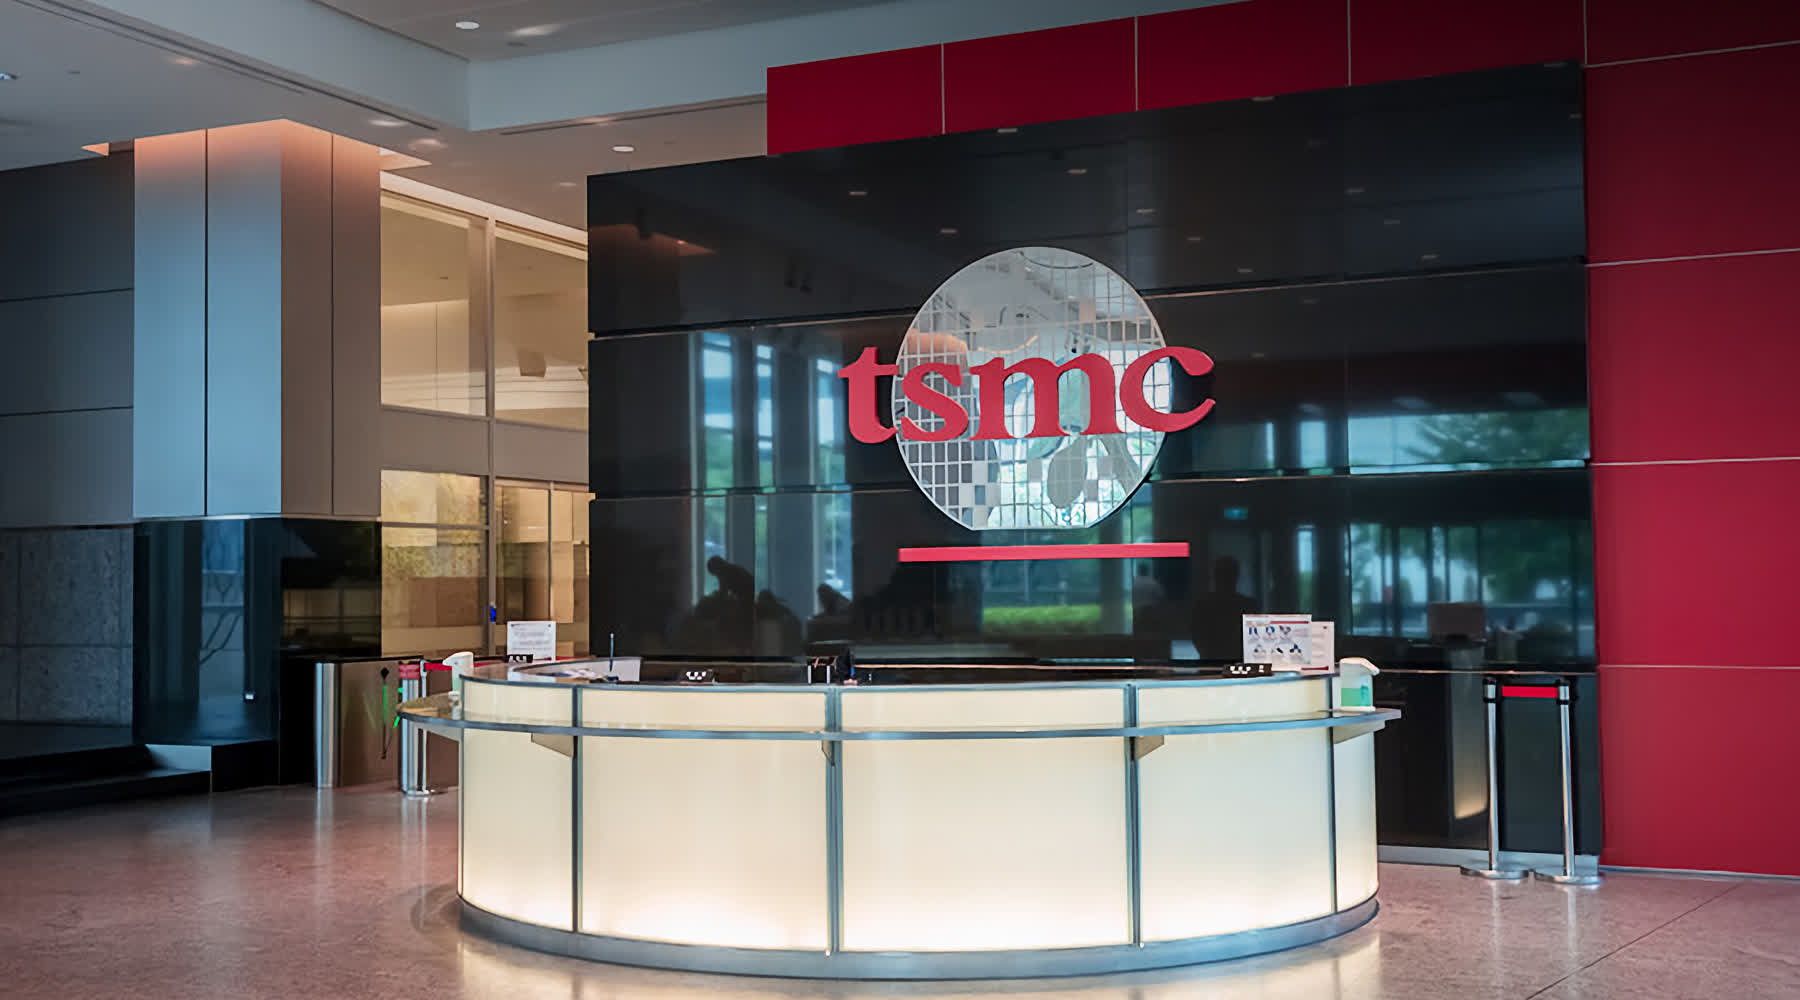 TSMC increased its chip prices by 3% for Apple while others faced 20% rises